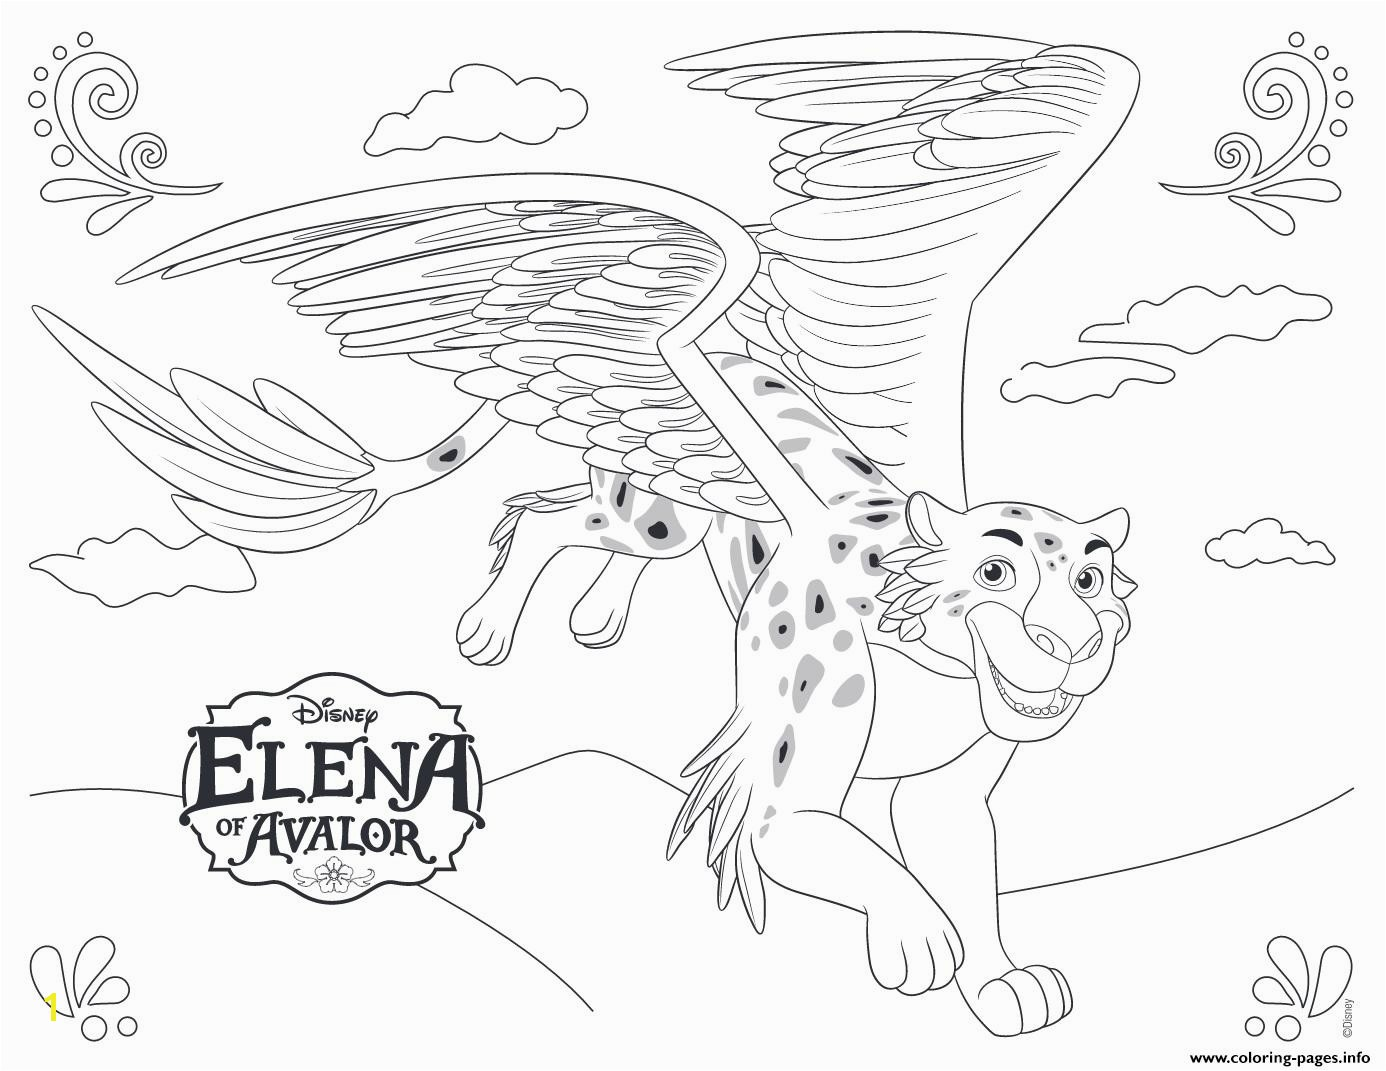 Cool Liberal Princess Elena Coloring Page Pages Fre 7739 Unknown